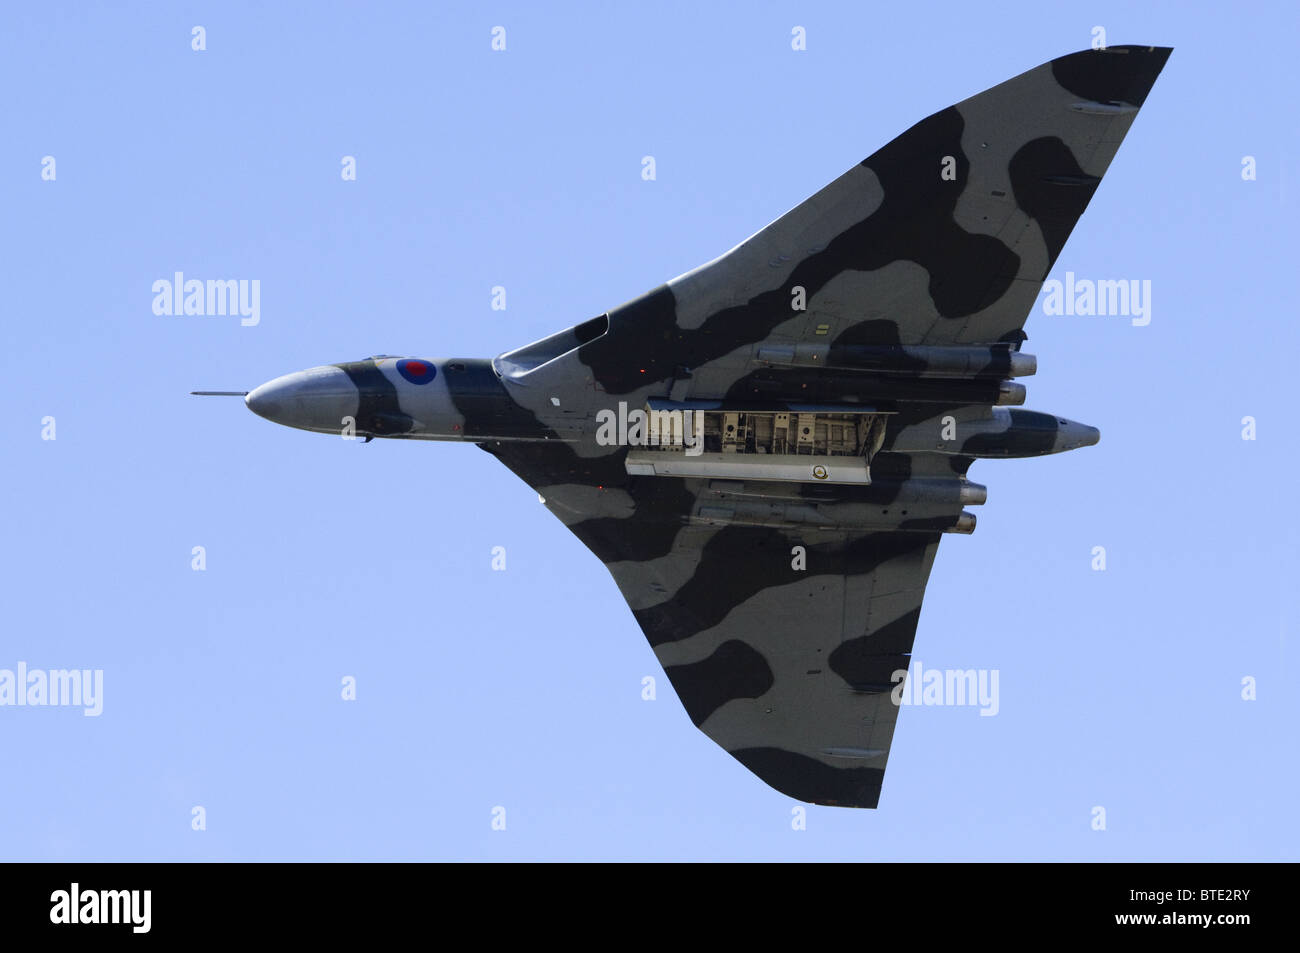 Avro Vulcan bomber making a flypast with bomb bay doors open at Farnborough Airshow 2010 & Avro Vulcan bomber making a flypast with bomb bay doors open at ...